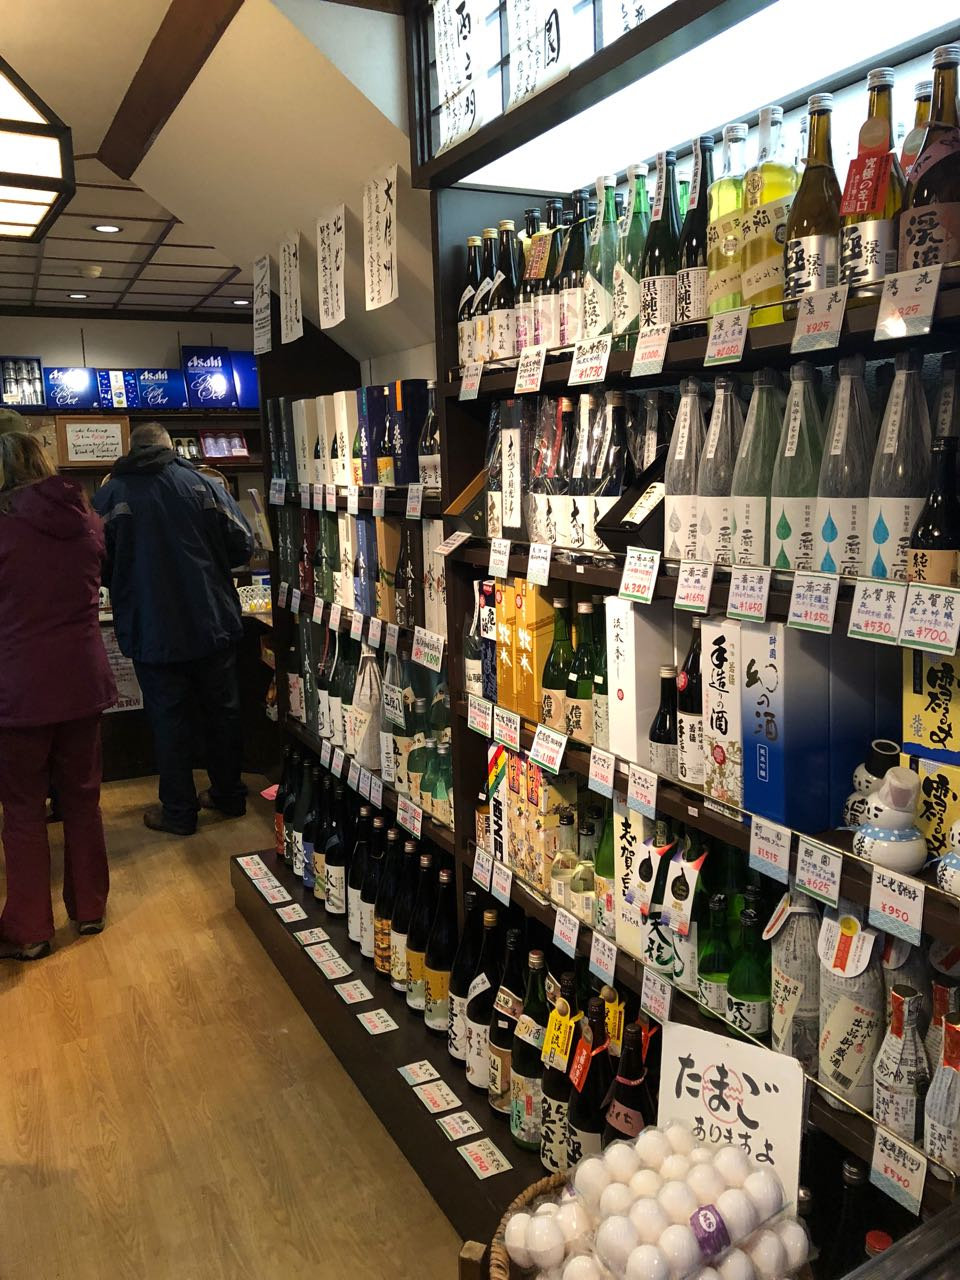 Not sure of the significance of being able to buy eggs at a bottle shop, just another Japanese thing to wonder about.